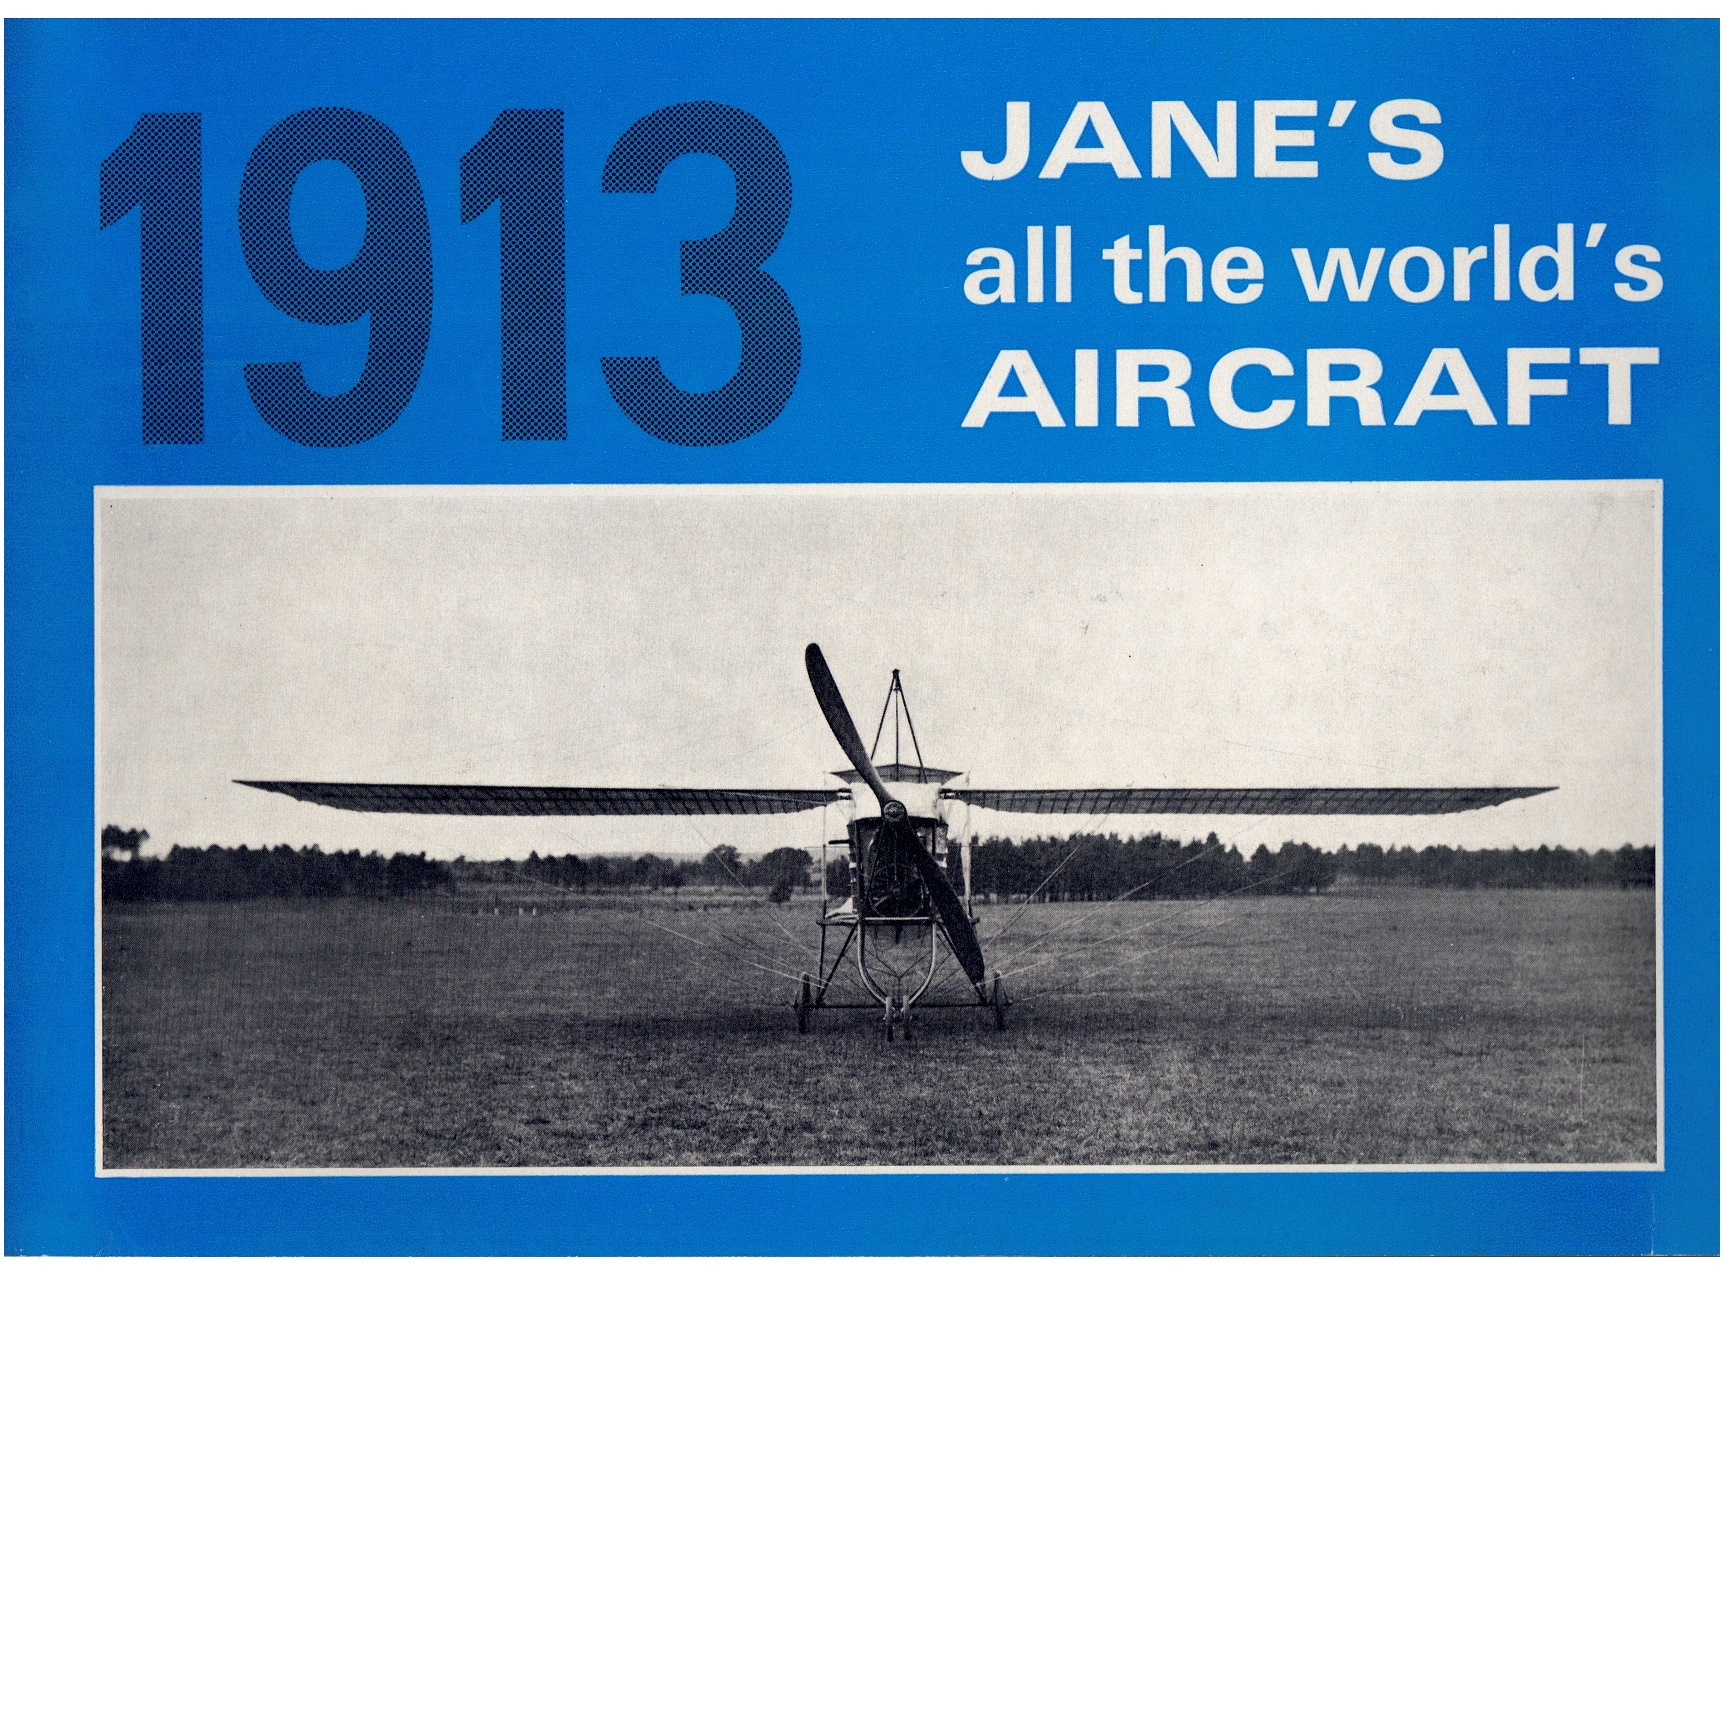 Janes All the Worlds Airships, 1913 - Jane, Fred T.